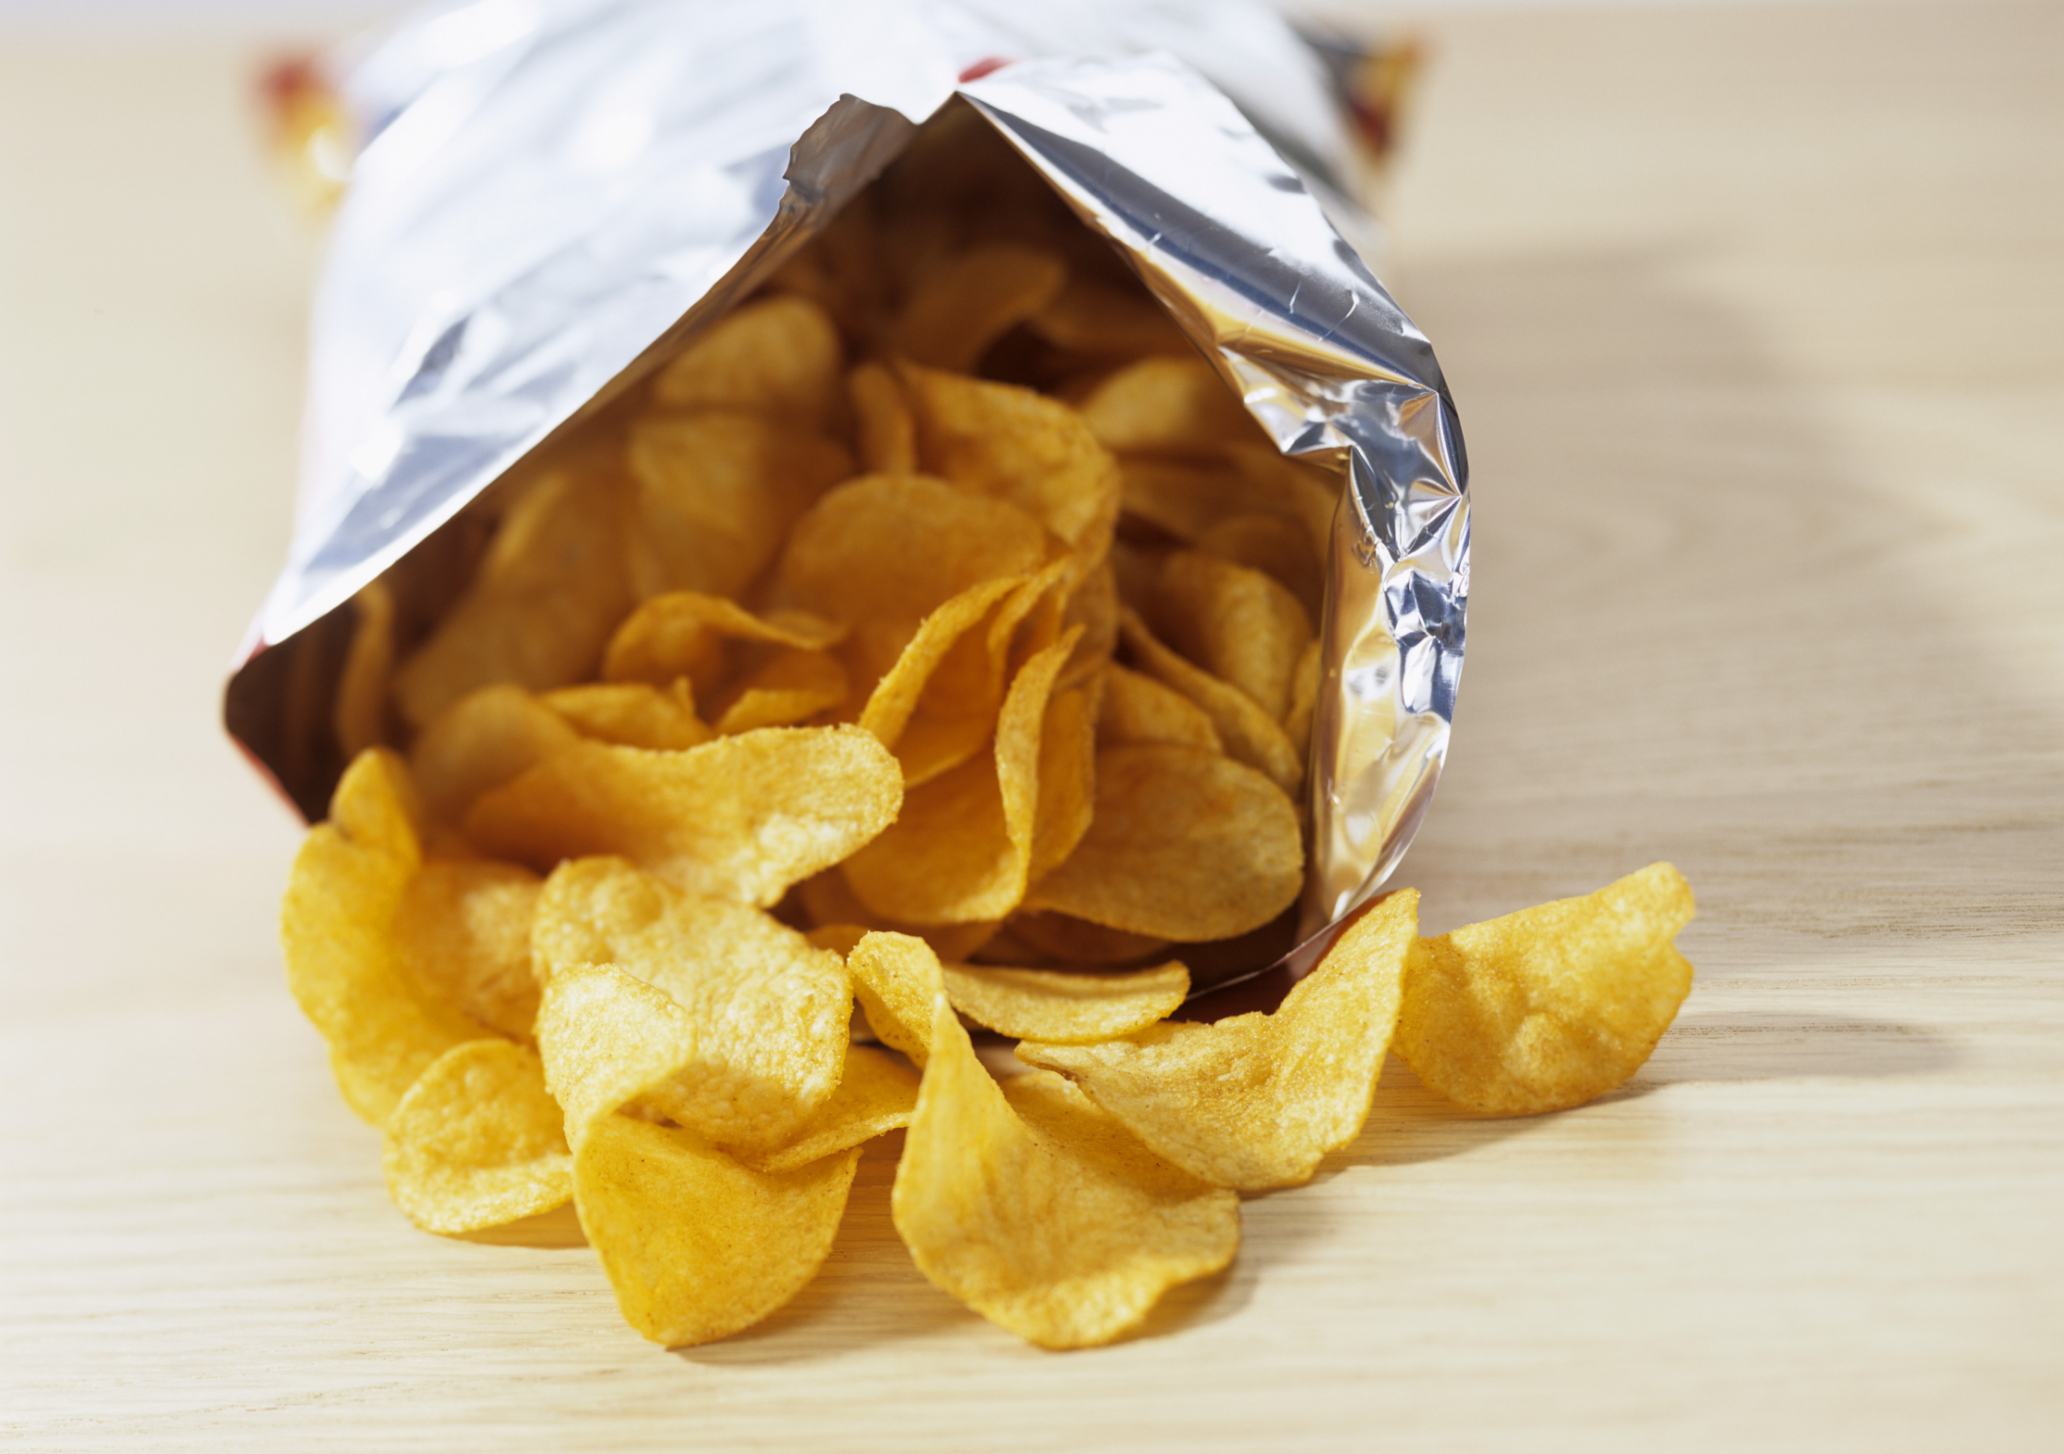 How To Reseal A Bag Of Chips